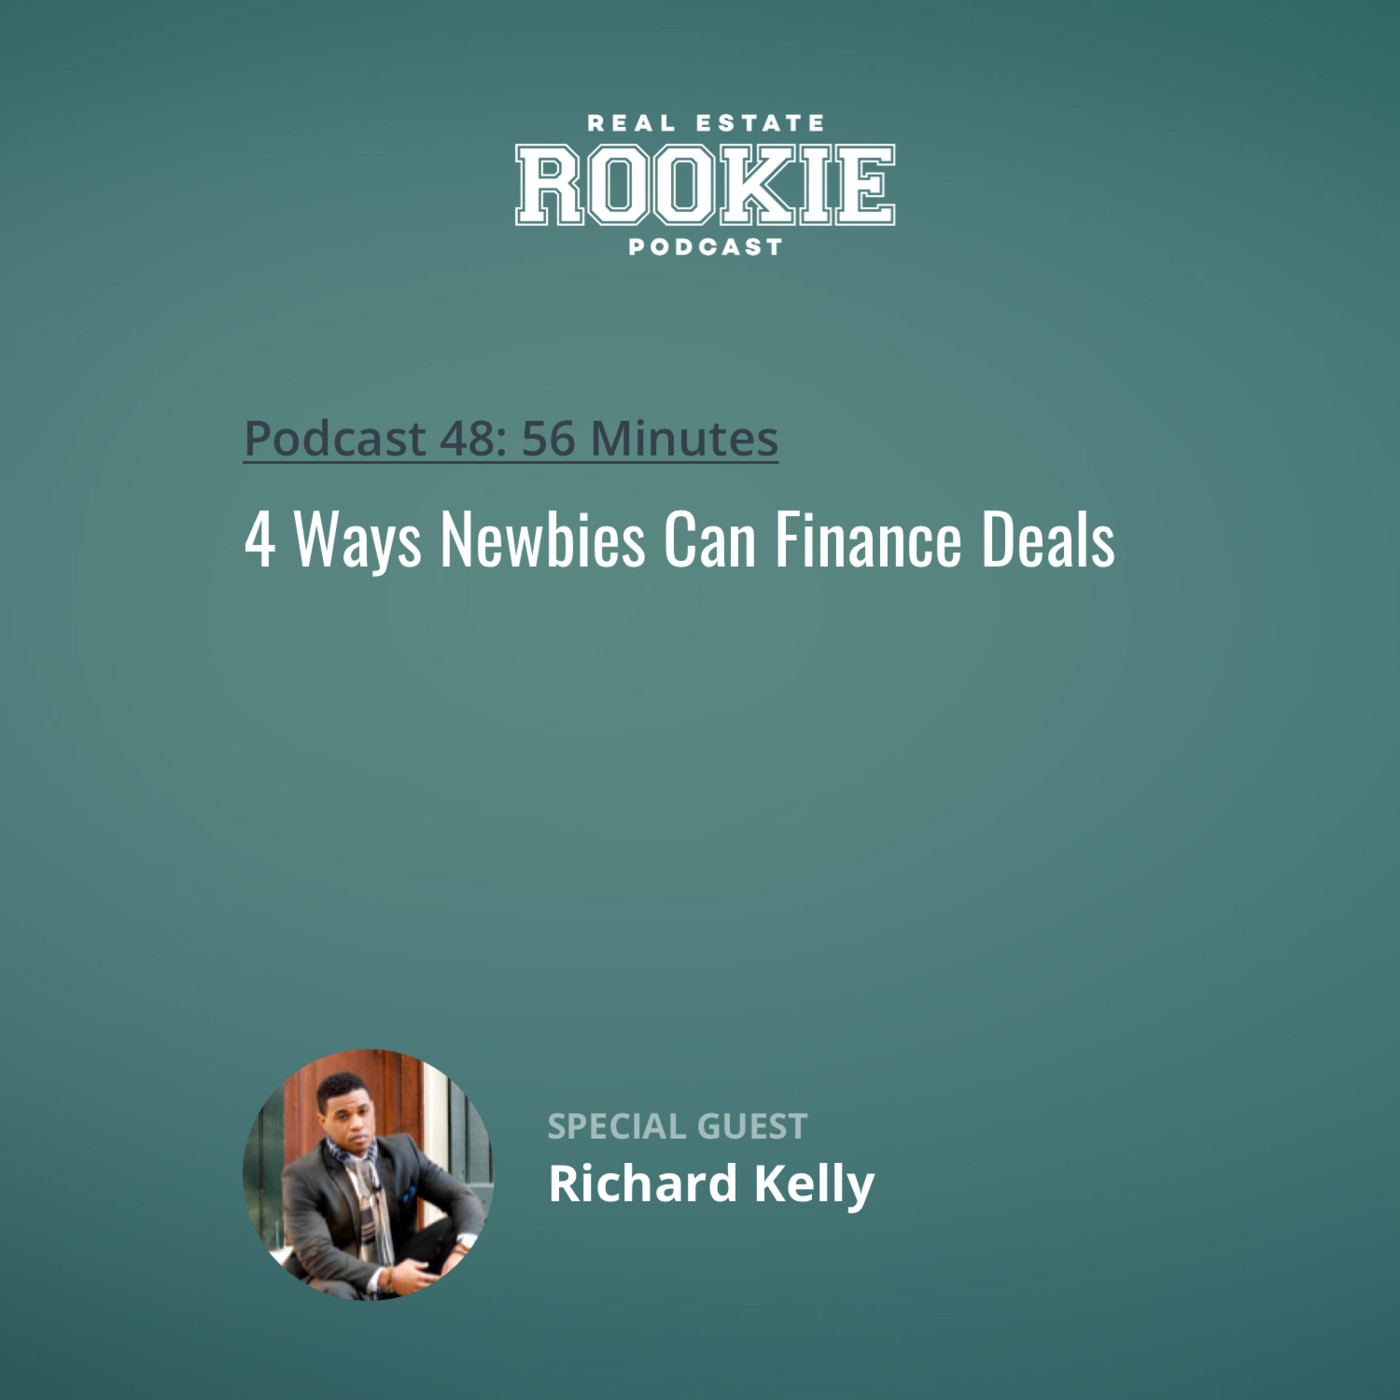 4 Ways Newbies Can Finance Deals with Richard Kelly